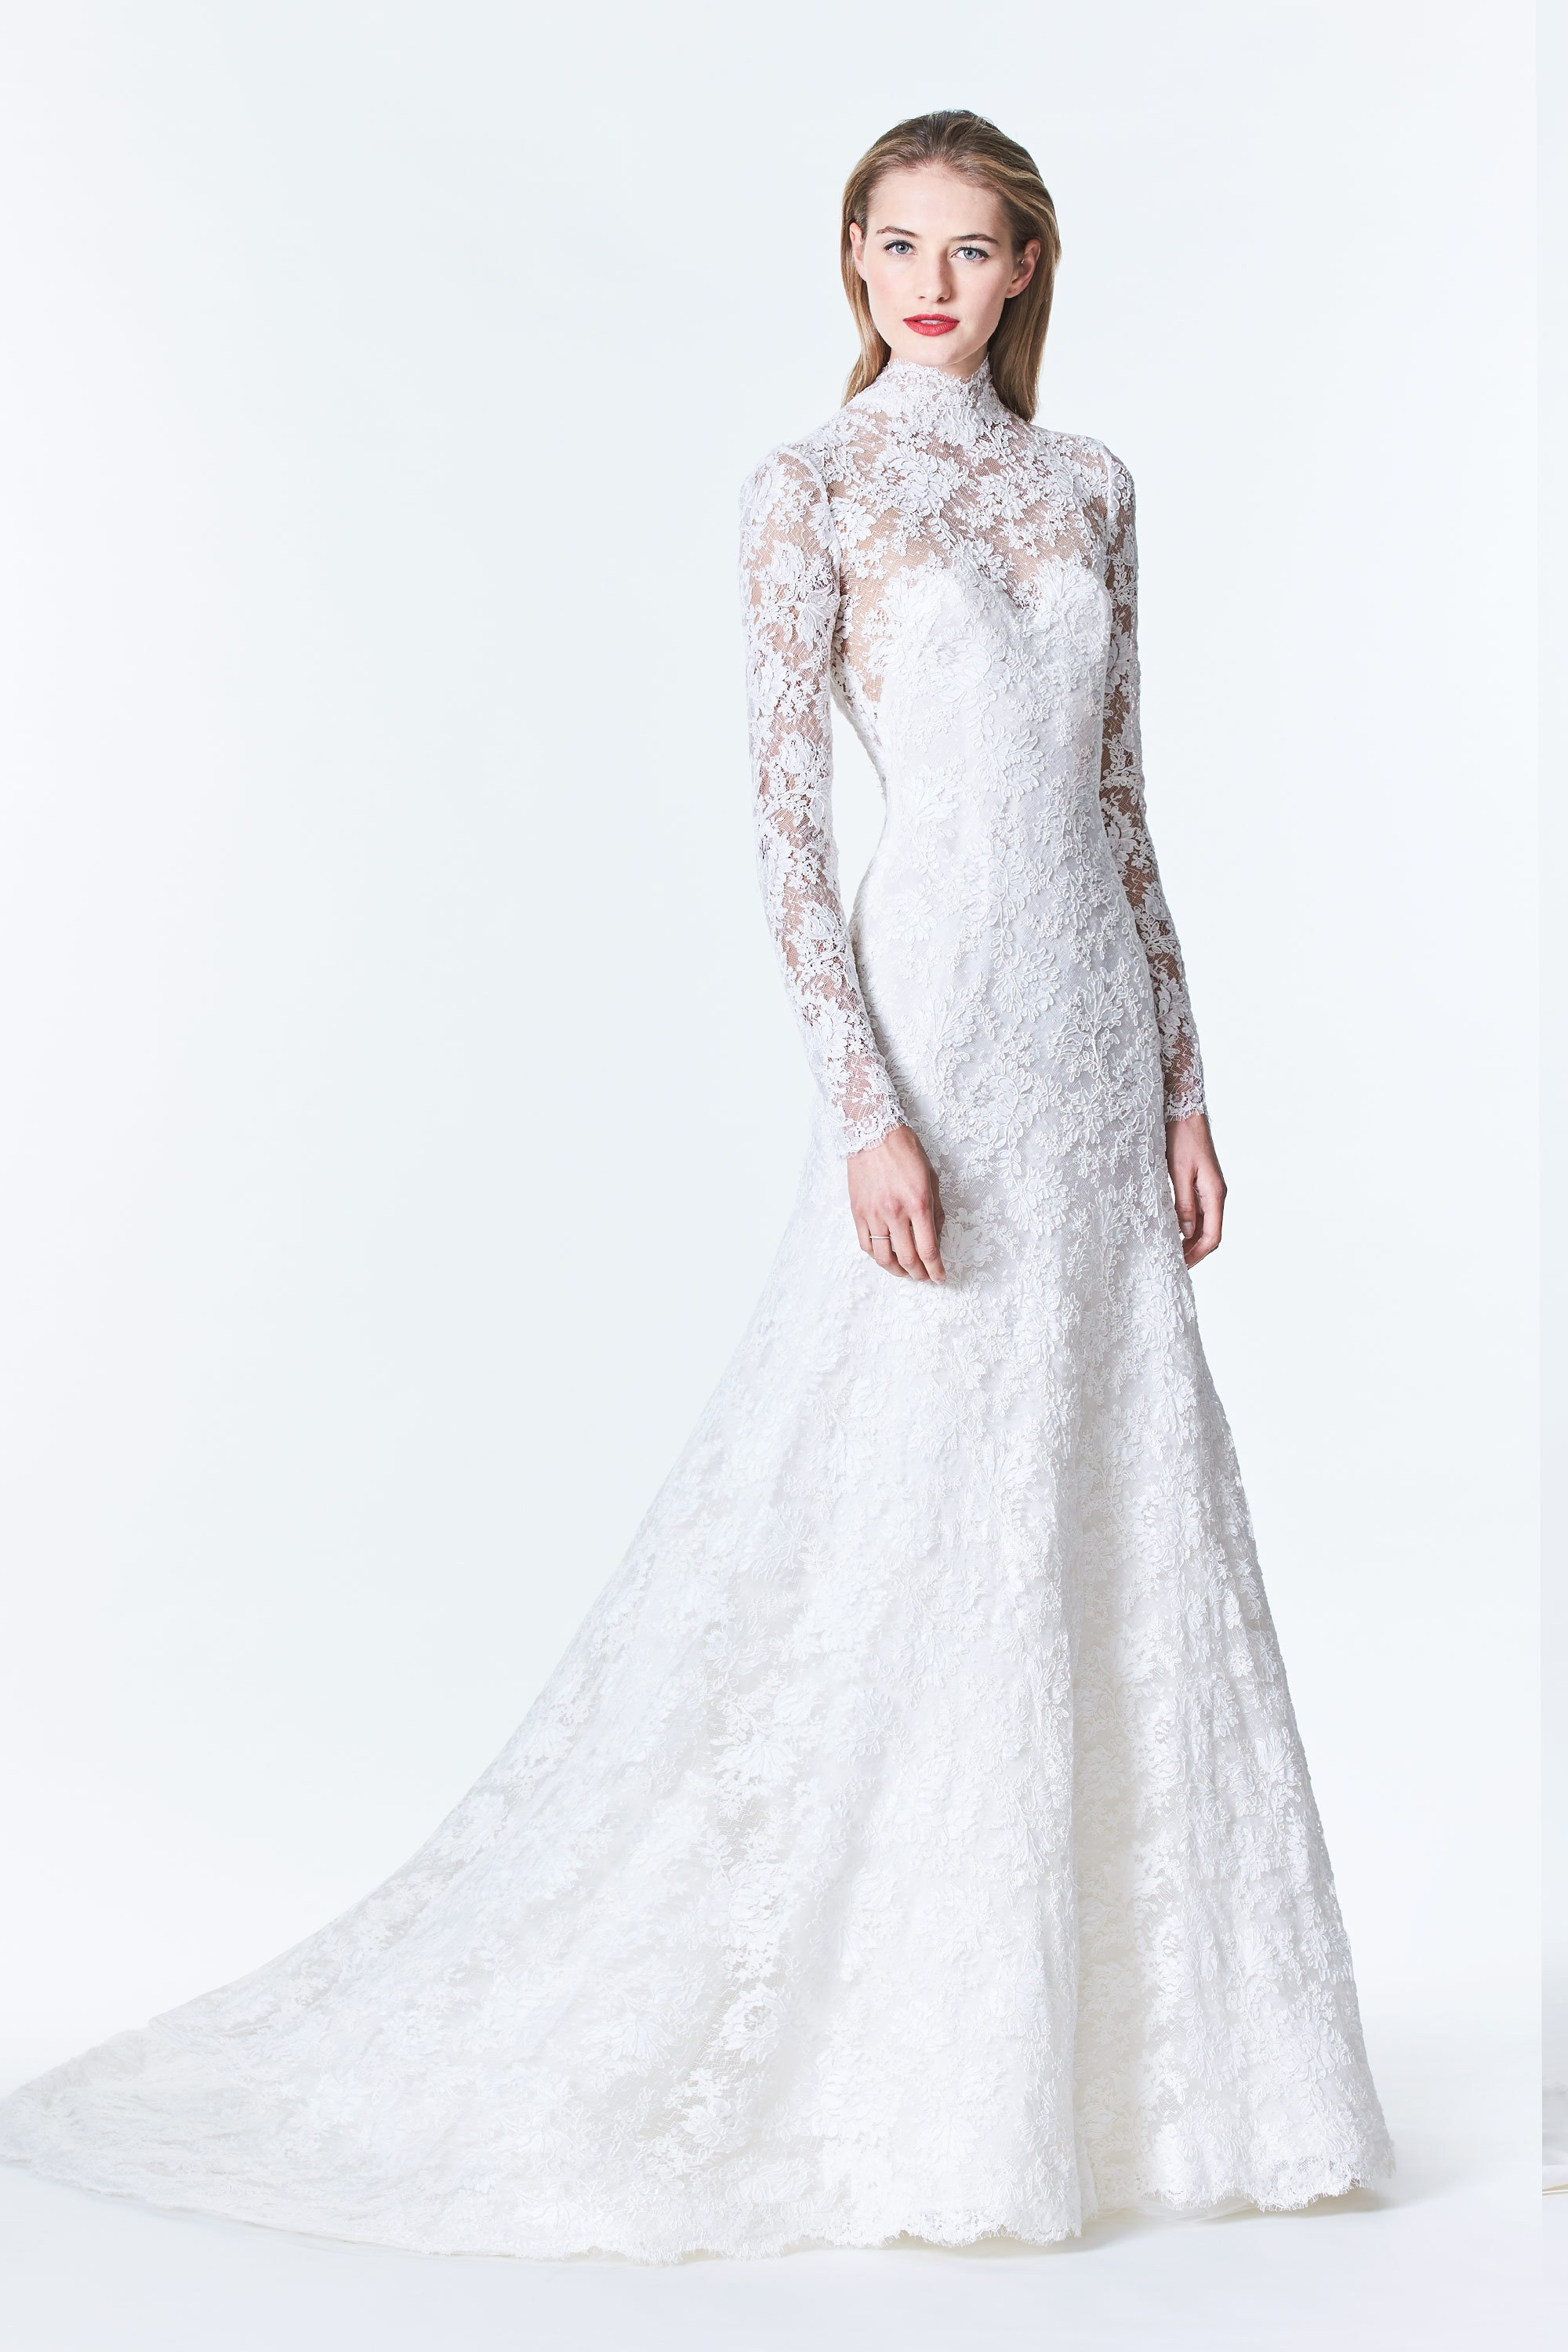 OUR BLOG Sacks Productions Inspirational 27 Wedding Dresses Movie Watch Online Free